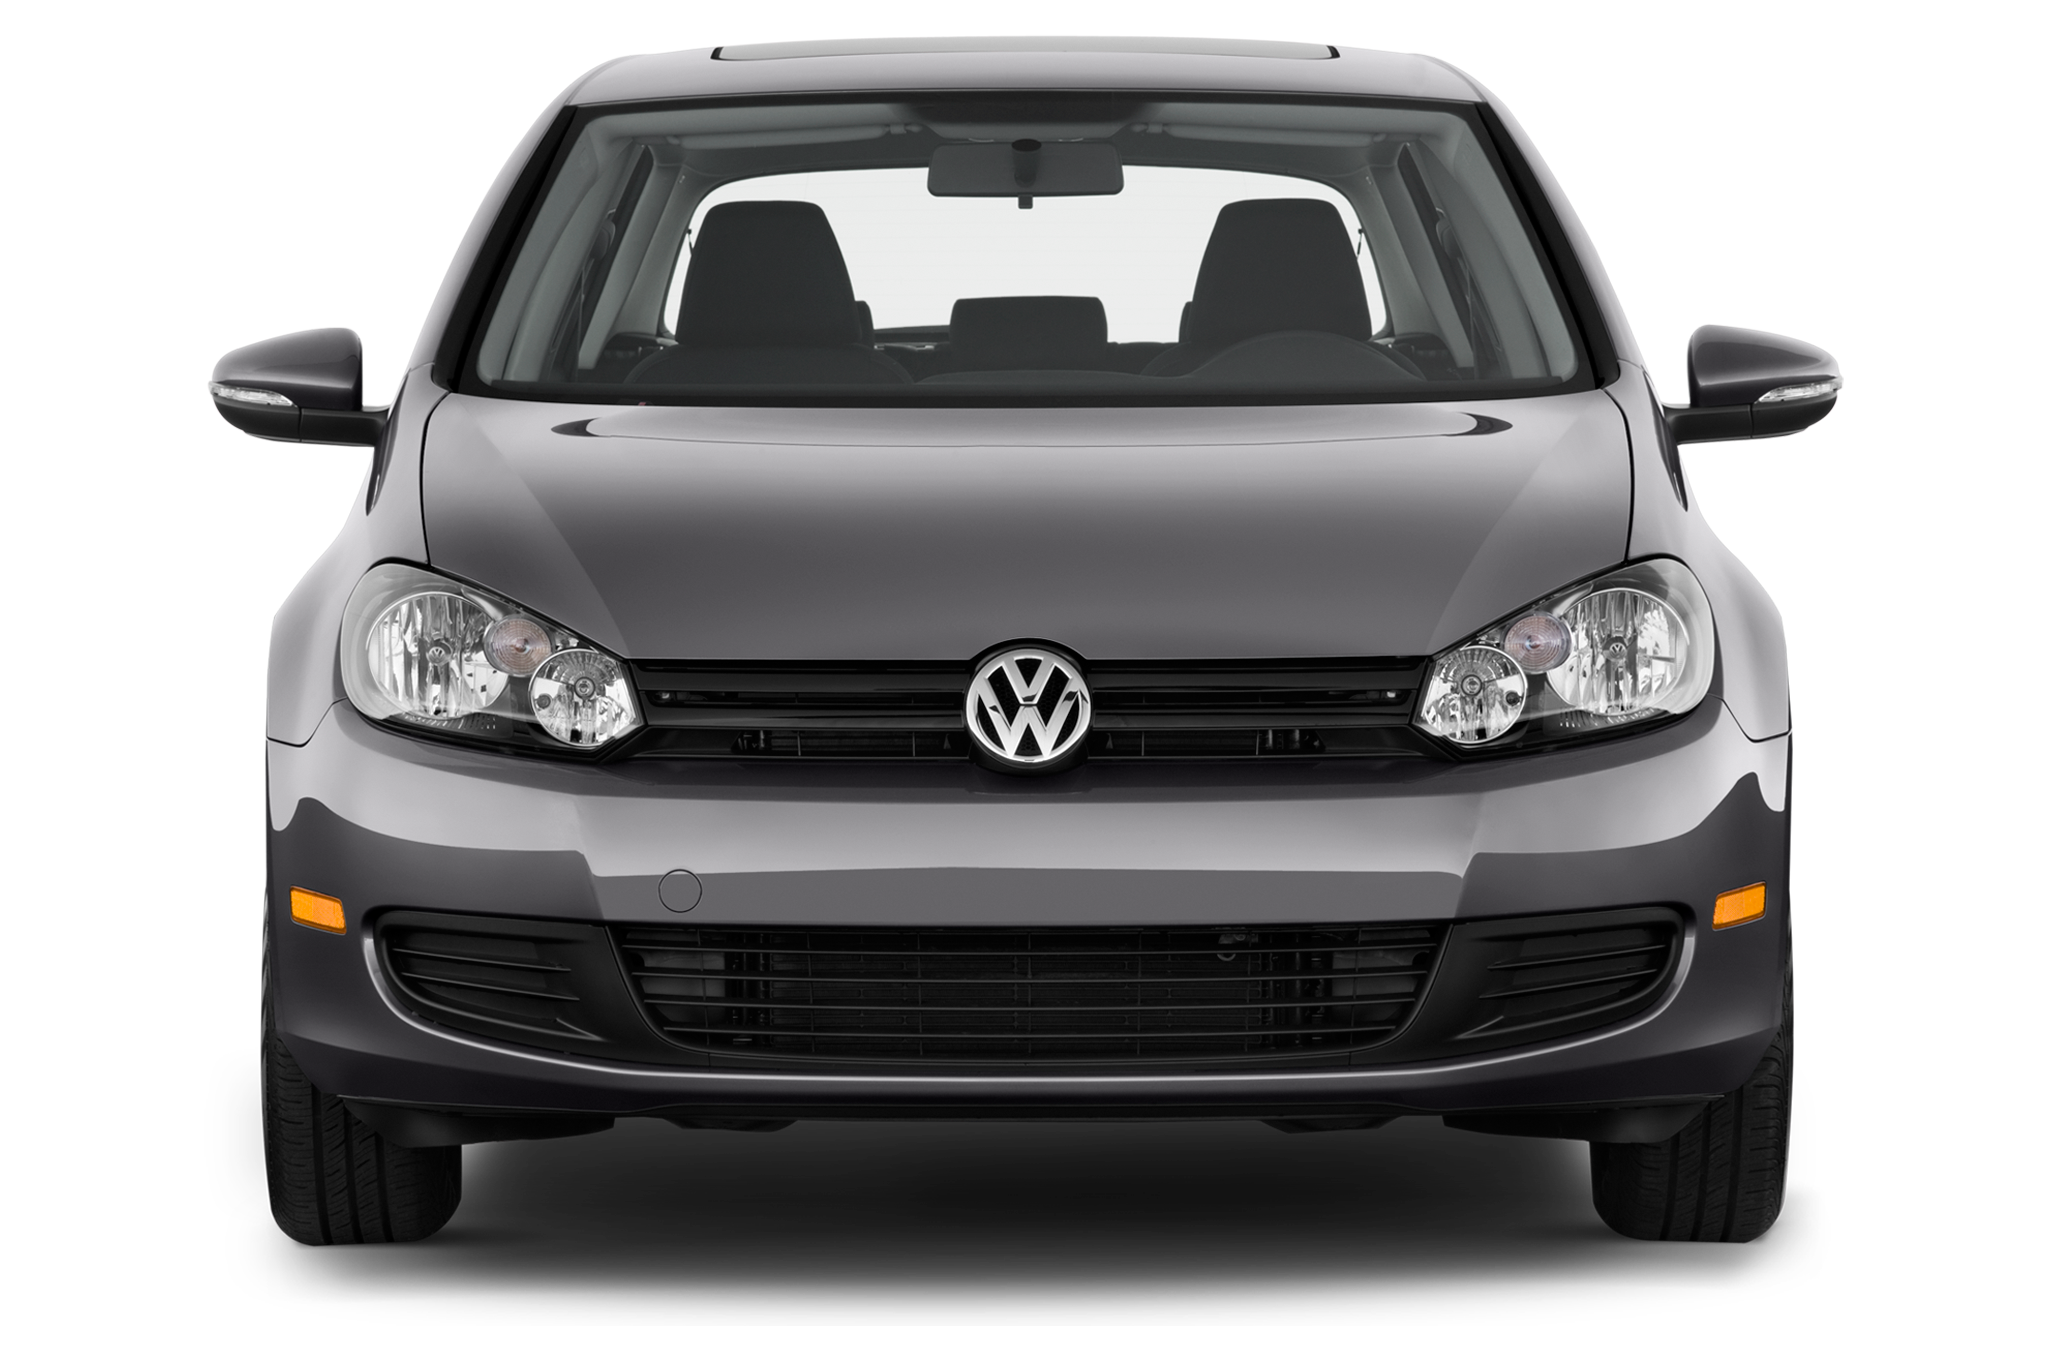 2011 volkswagen golf tdi 2 door editors 39 notebook automobile magazine. Black Bedroom Furniture Sets. Home Design Ideas